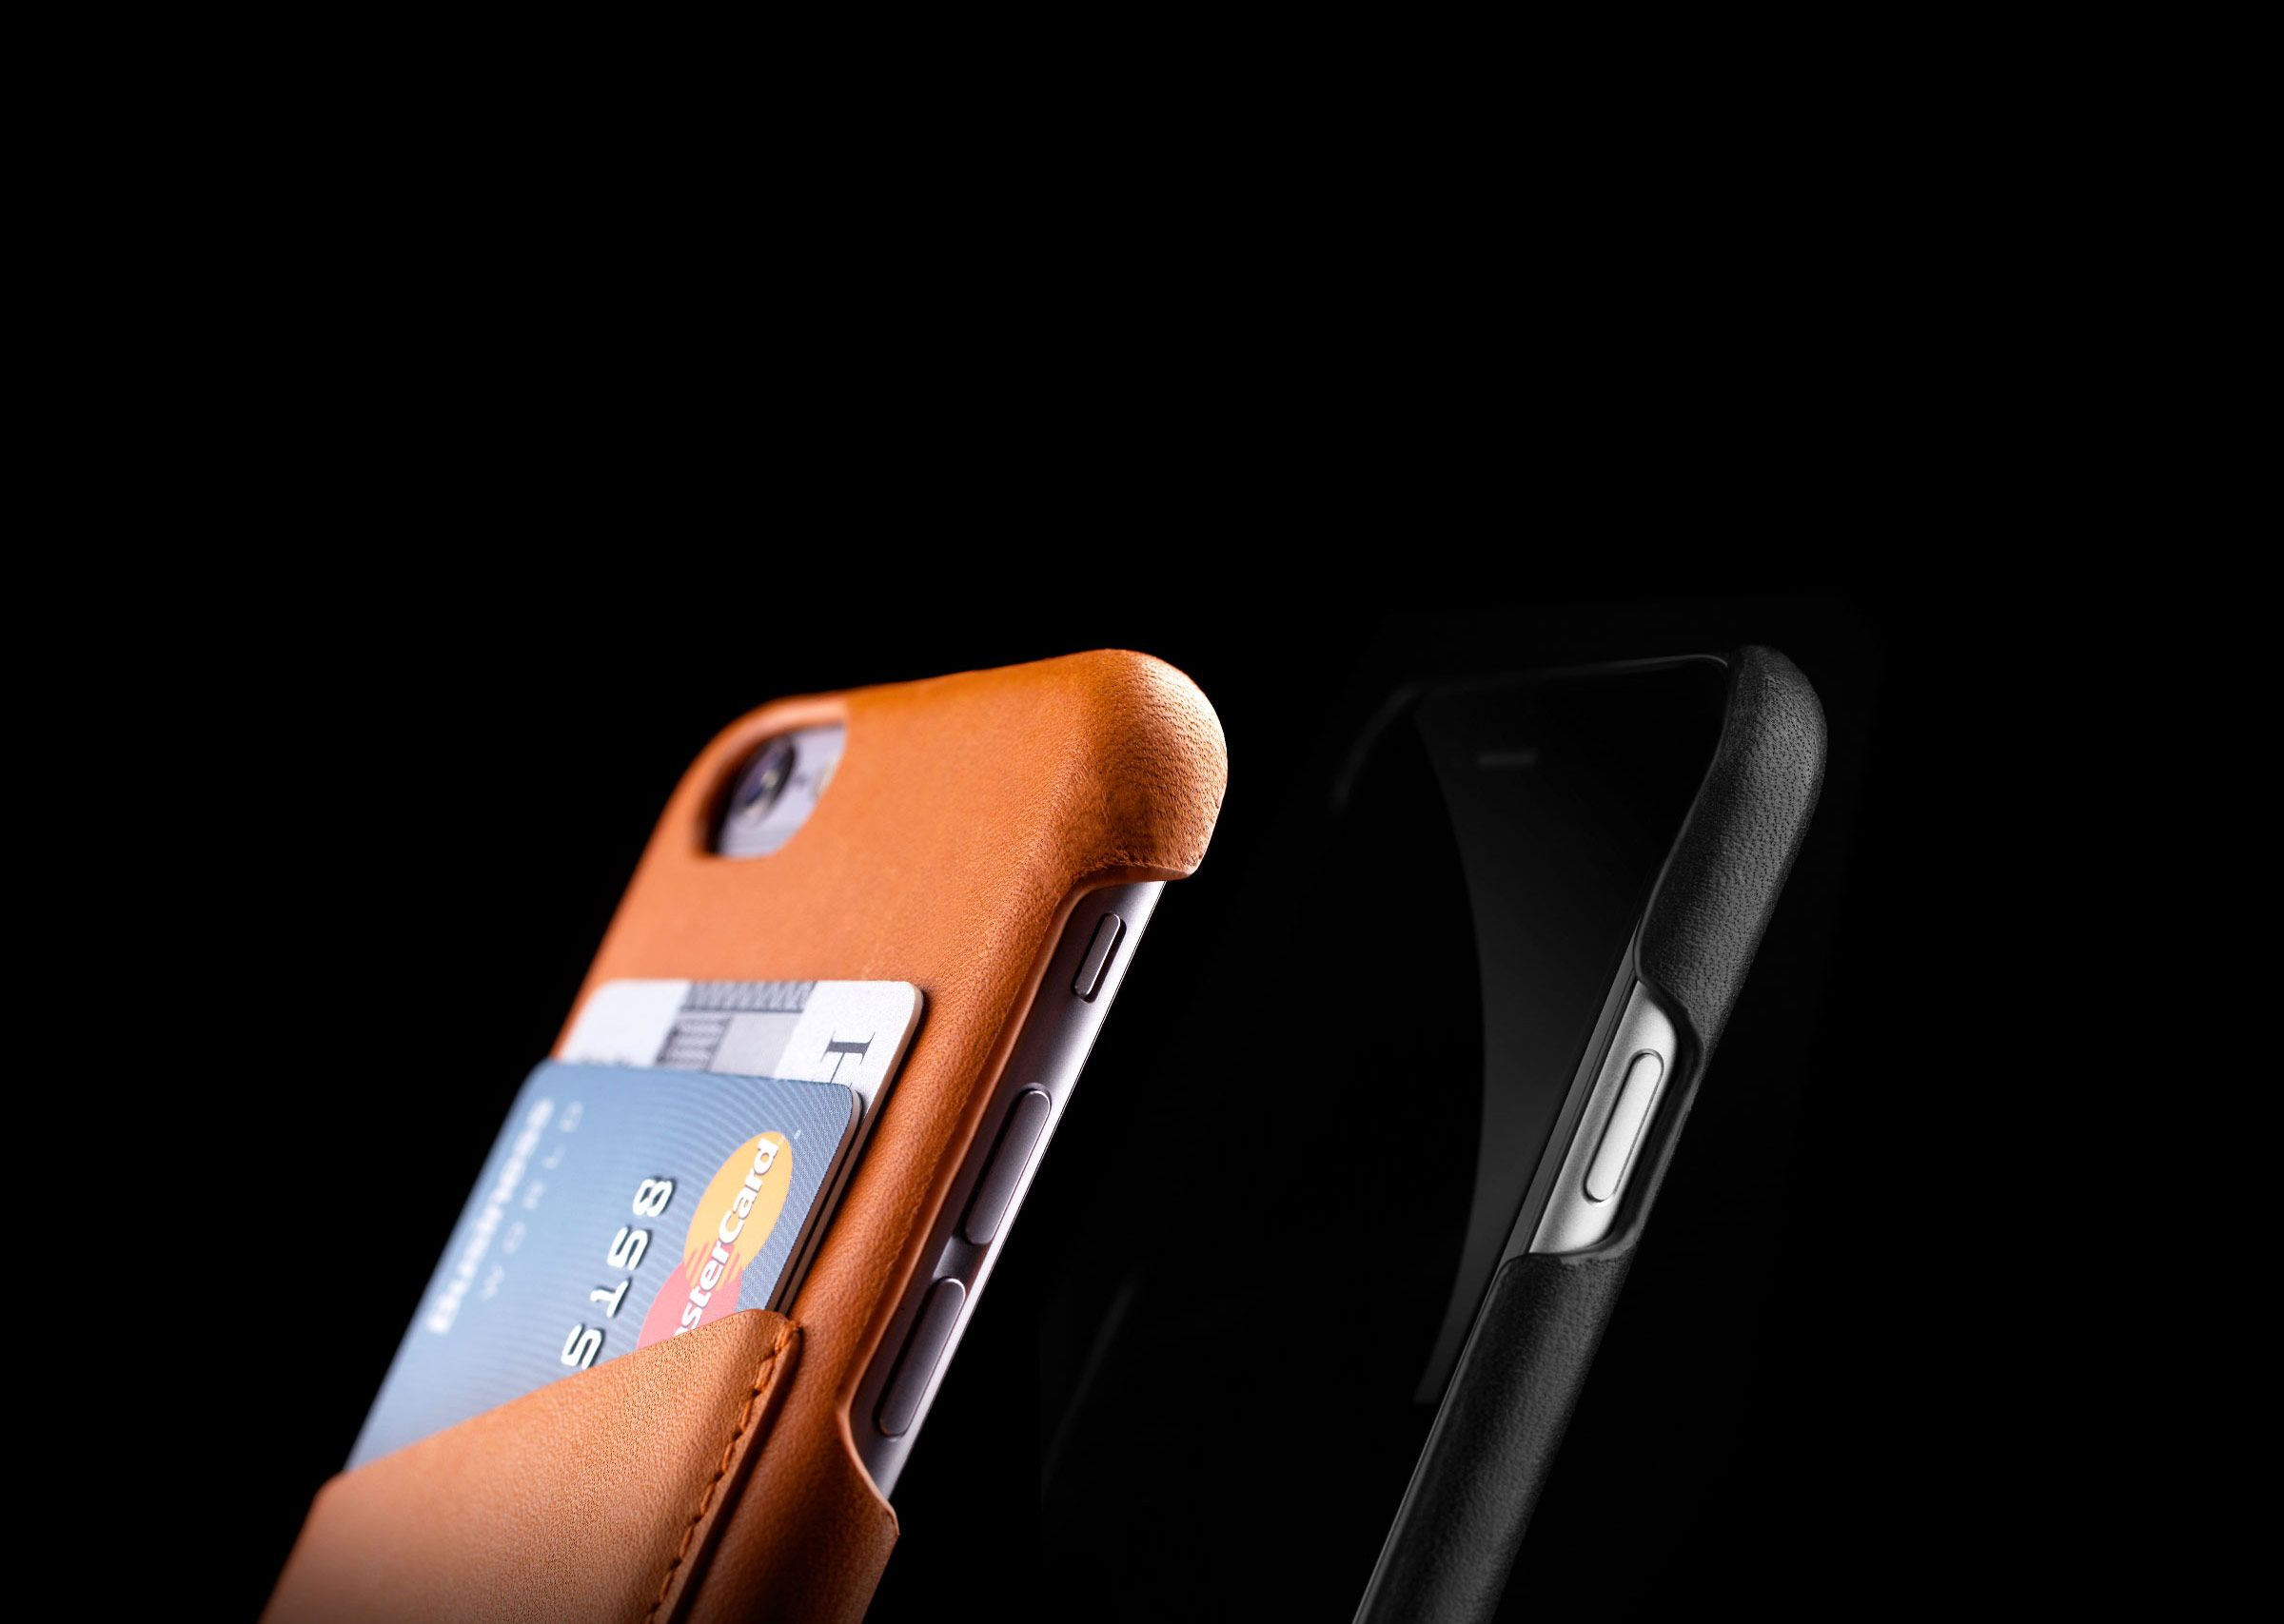 Mujjo - Dutch Craftsmanship - Leather iPhone 6 Wallet cases, iPad Sleeves, Macbook Sleeves and Touchscreen Gloves